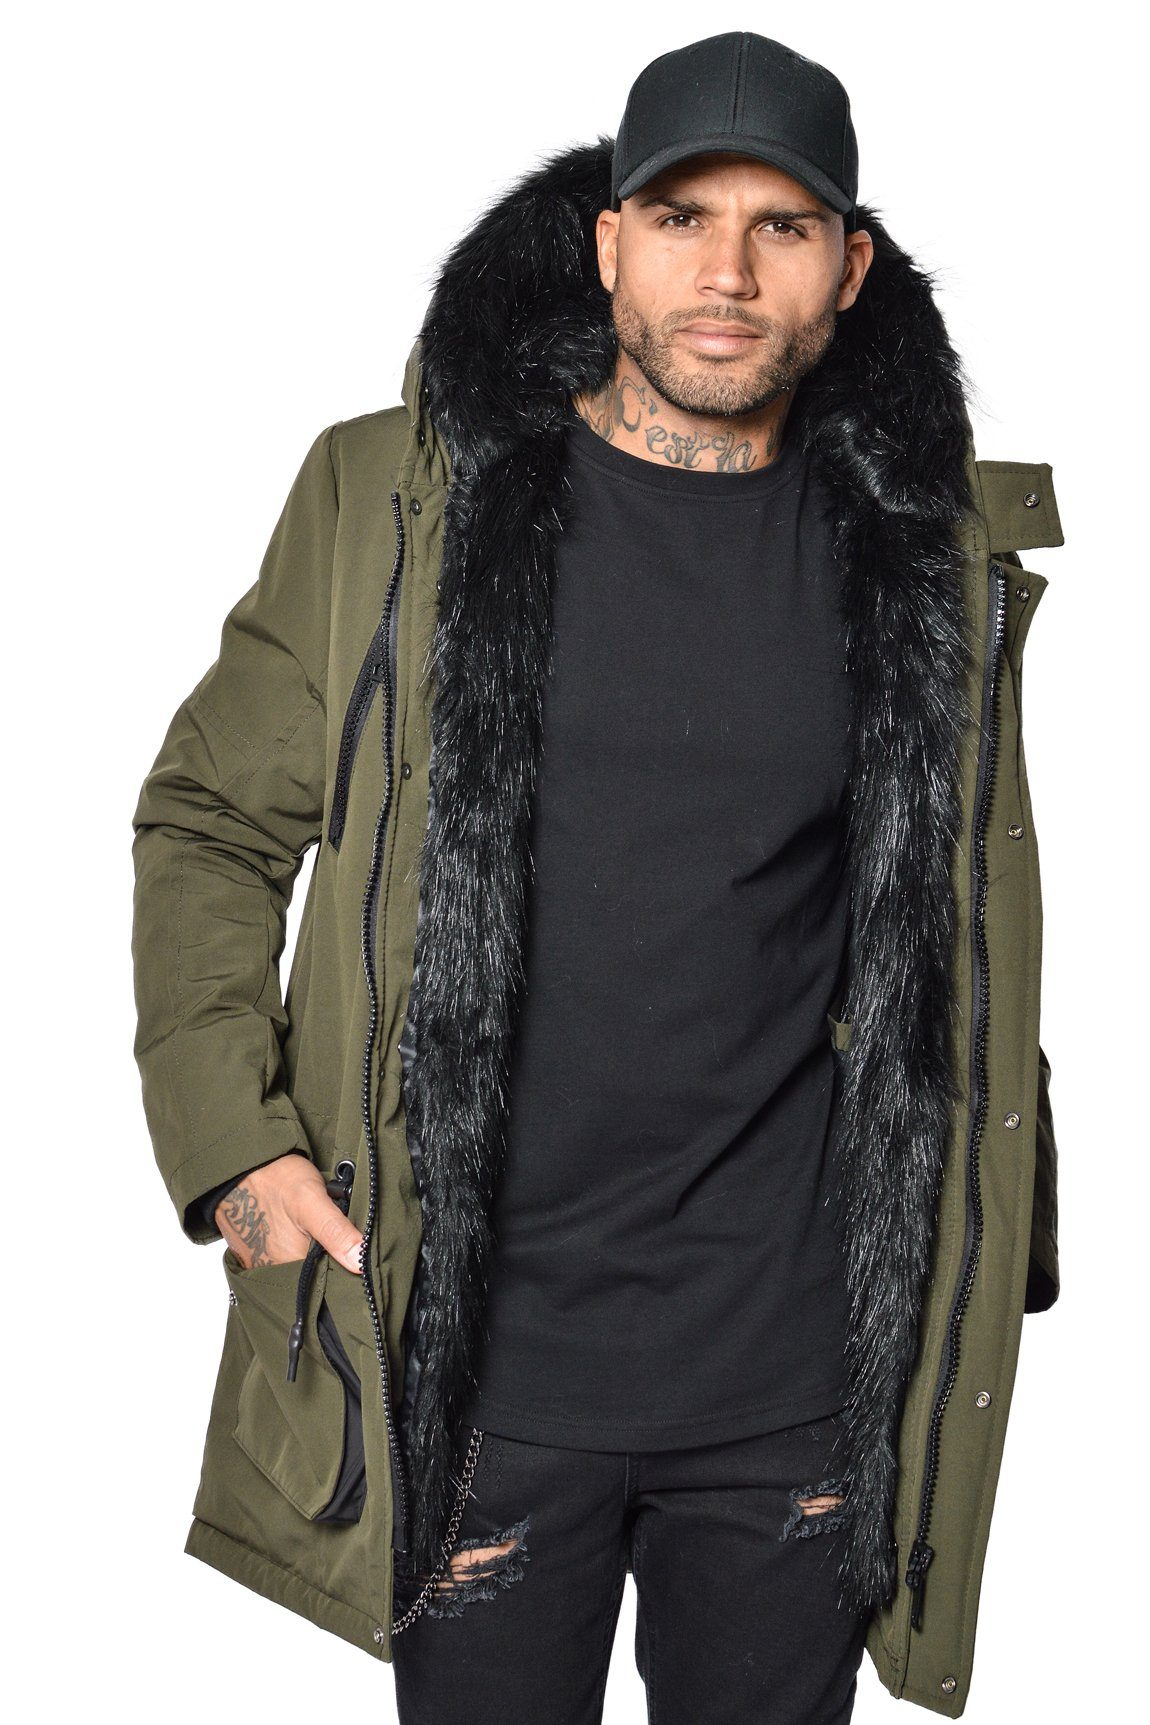 Arctic Parka Olive & Black Fur - PEGADOR - Dominate the Hype